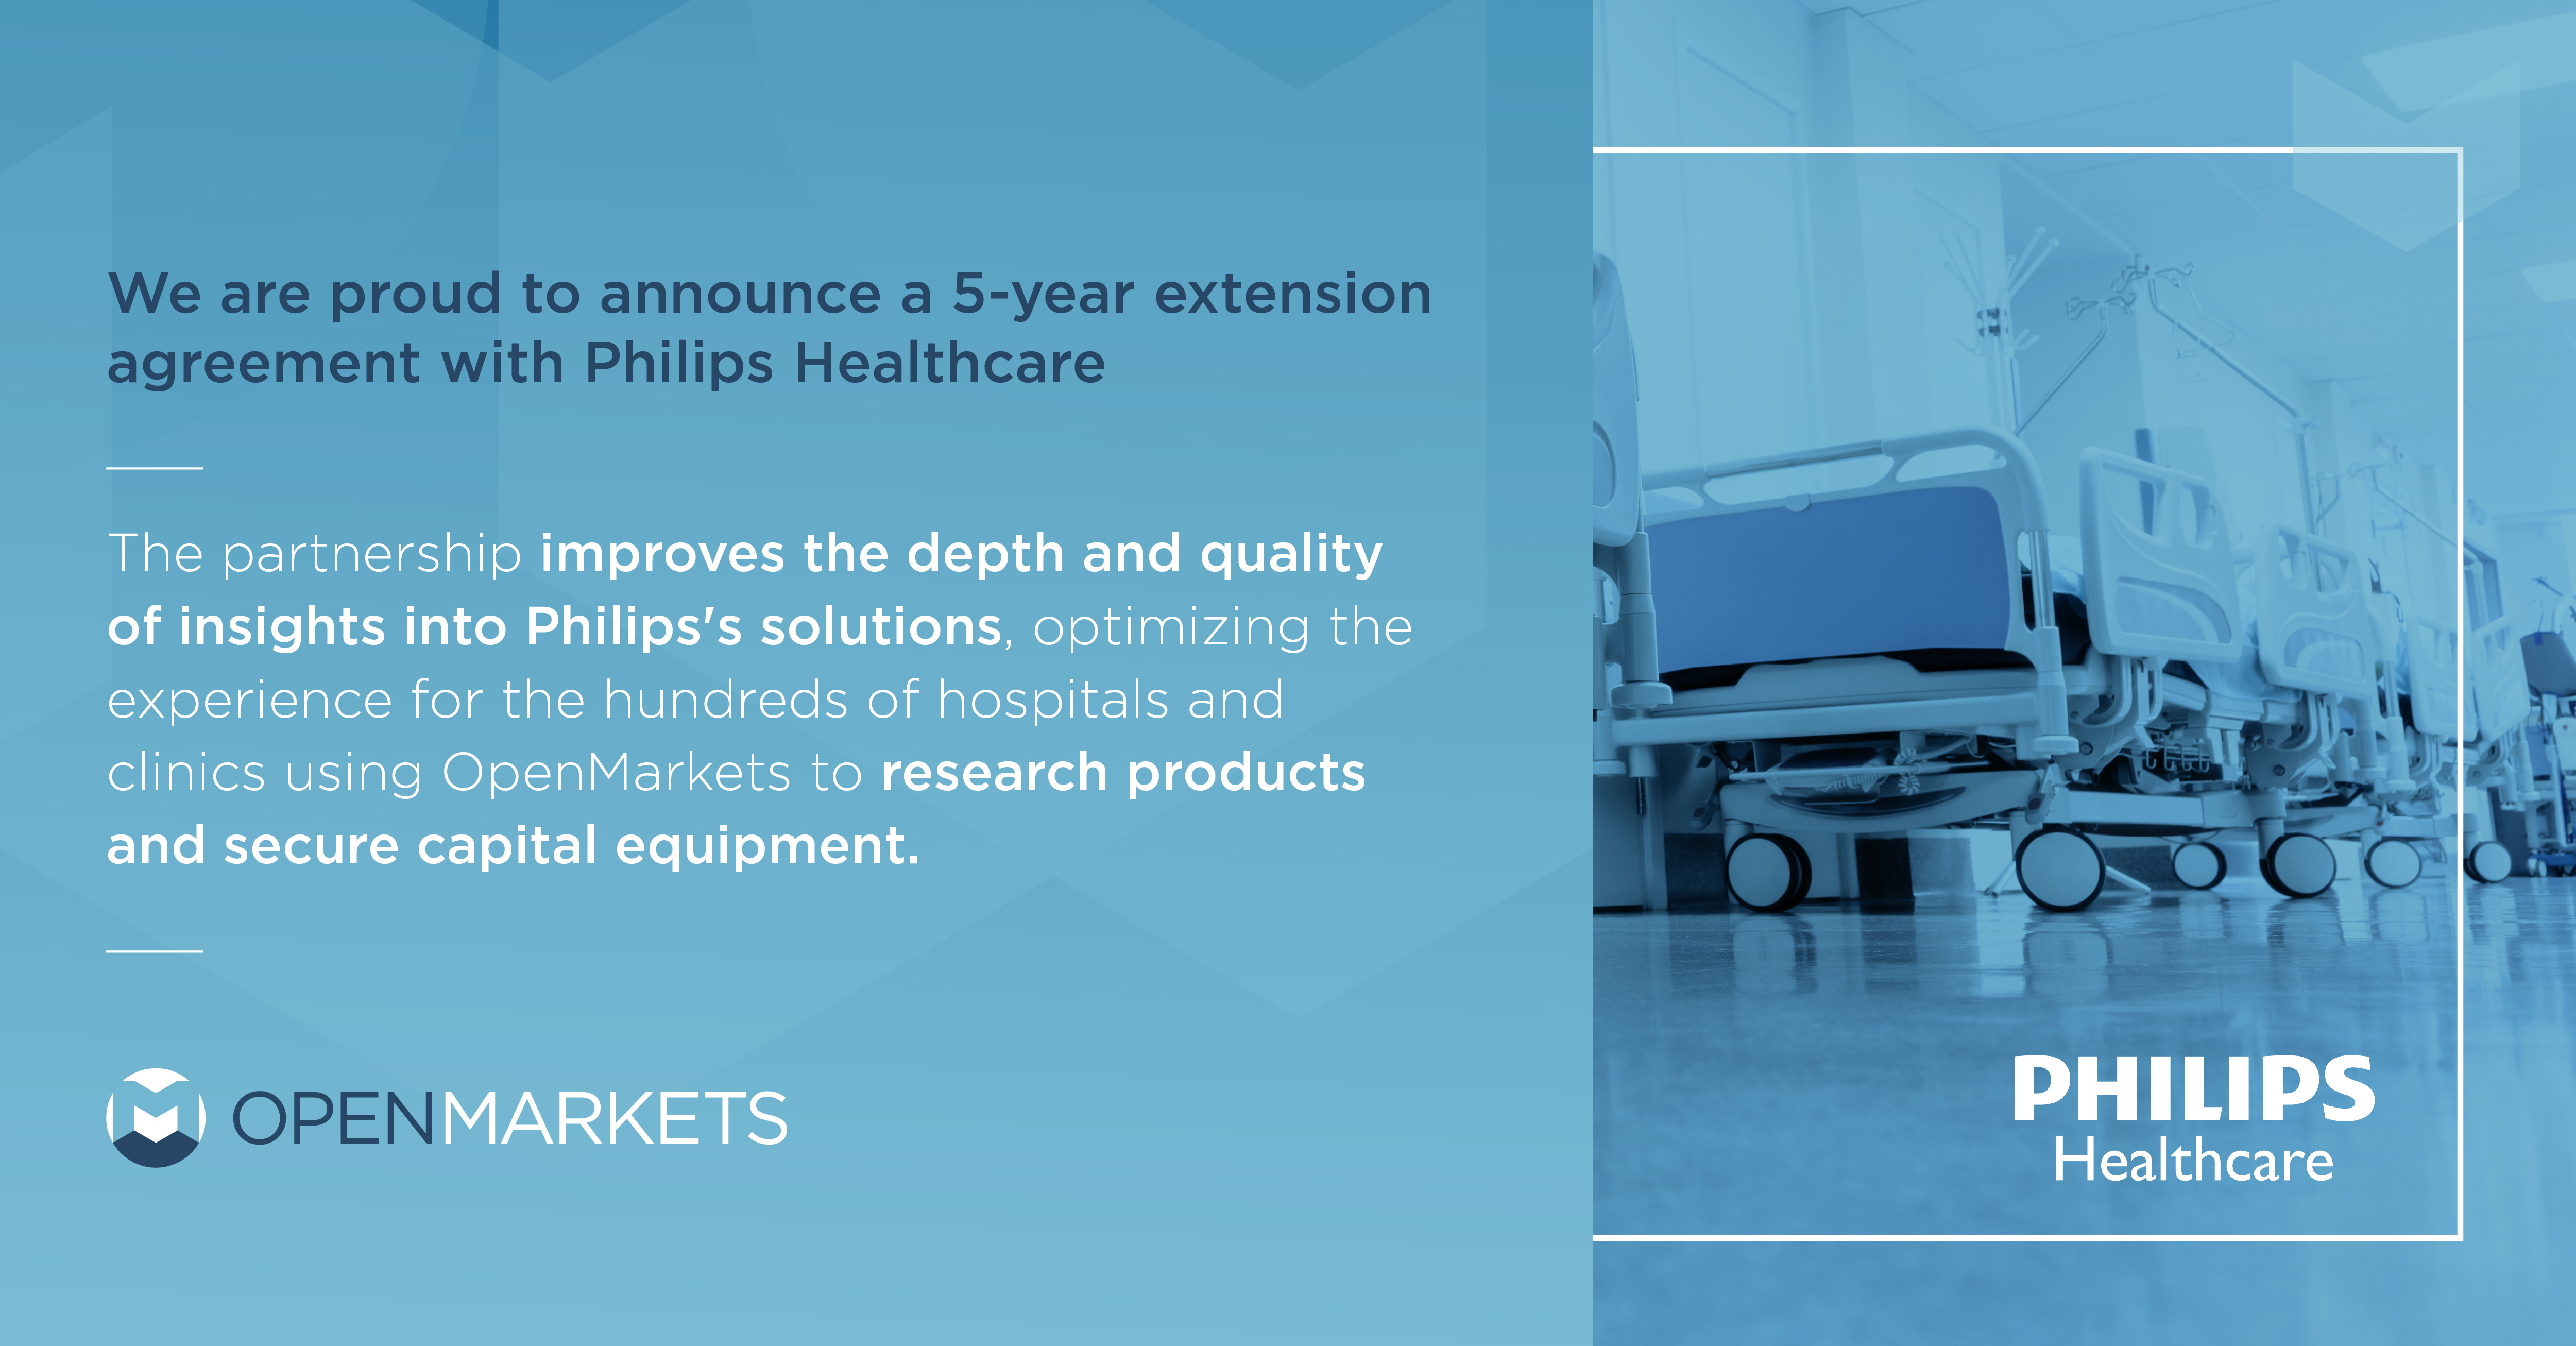 Philips Inks 5-Year Extension Agreement with OpenMarkets to Deepen the Ability of Providers to Research, Budget, and Approve Equipment Online